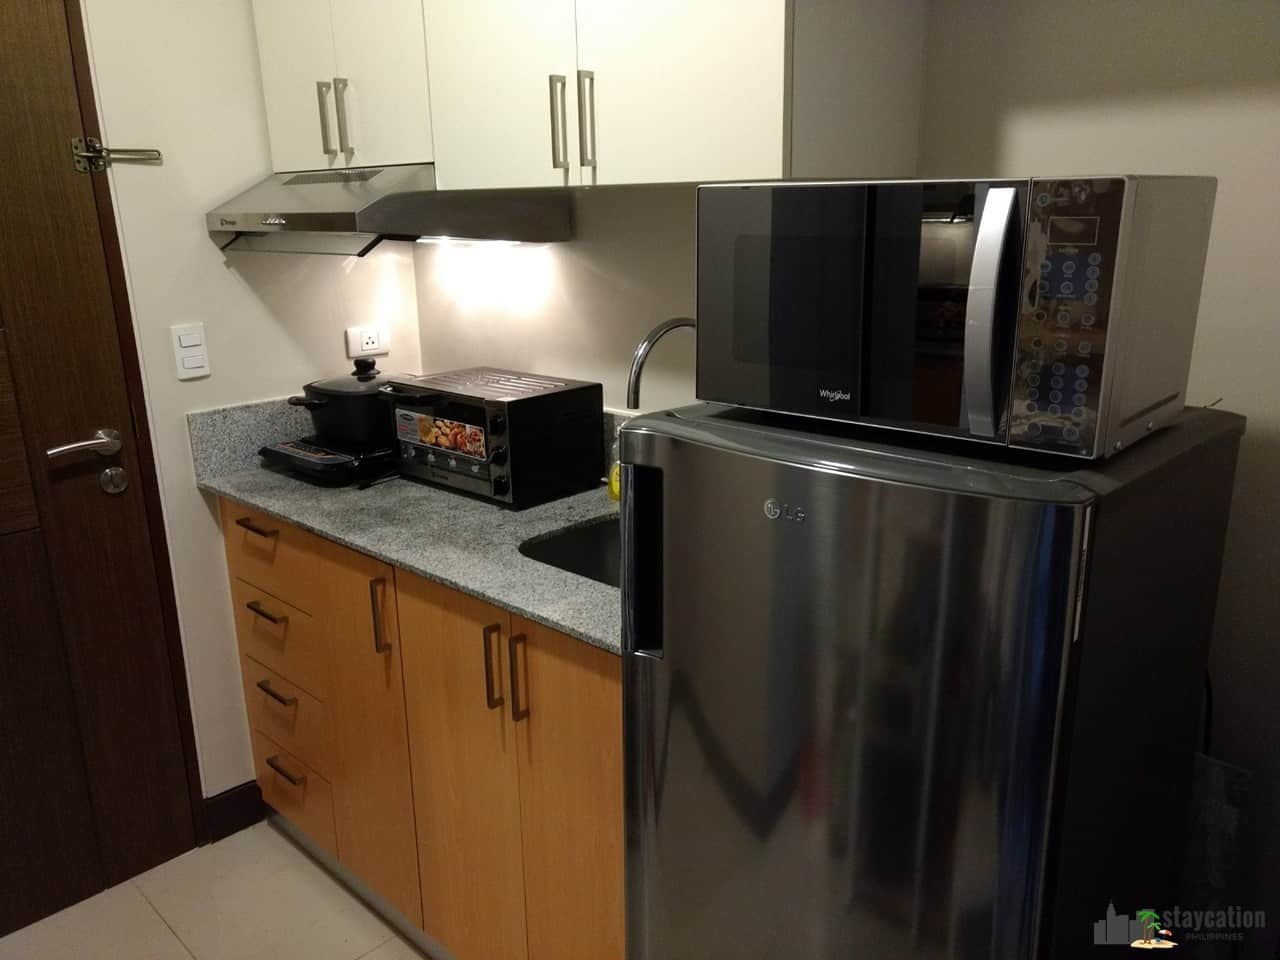 Affordable Staycation in Araneta Center Cubao 20